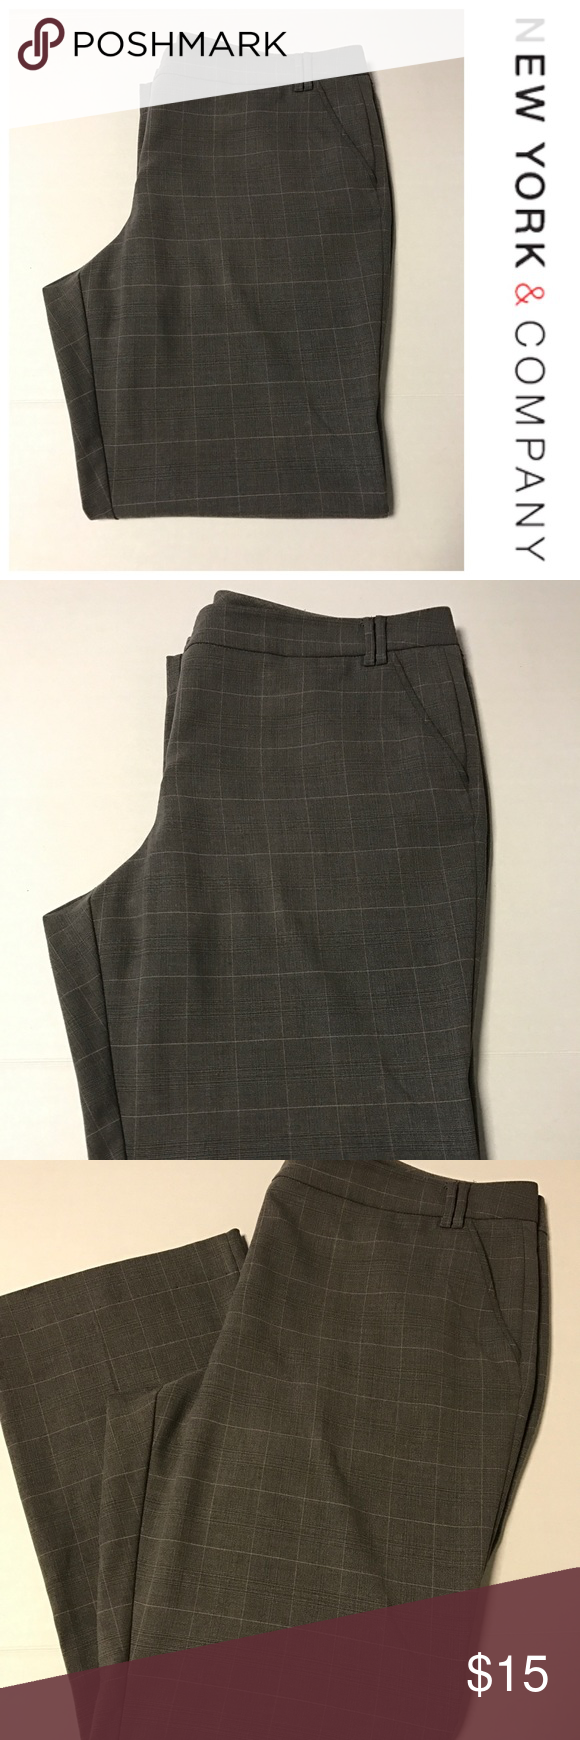 """New York & Co Bootcut Pants Great condition, almost new. No stains, rips or tears. Inseam measures 29"""", leg opening measures 10"""". Material is 80% Polyester, 18% Rayon, 2% Spandex. New York & Company Pants Boot Cut & Flare"""